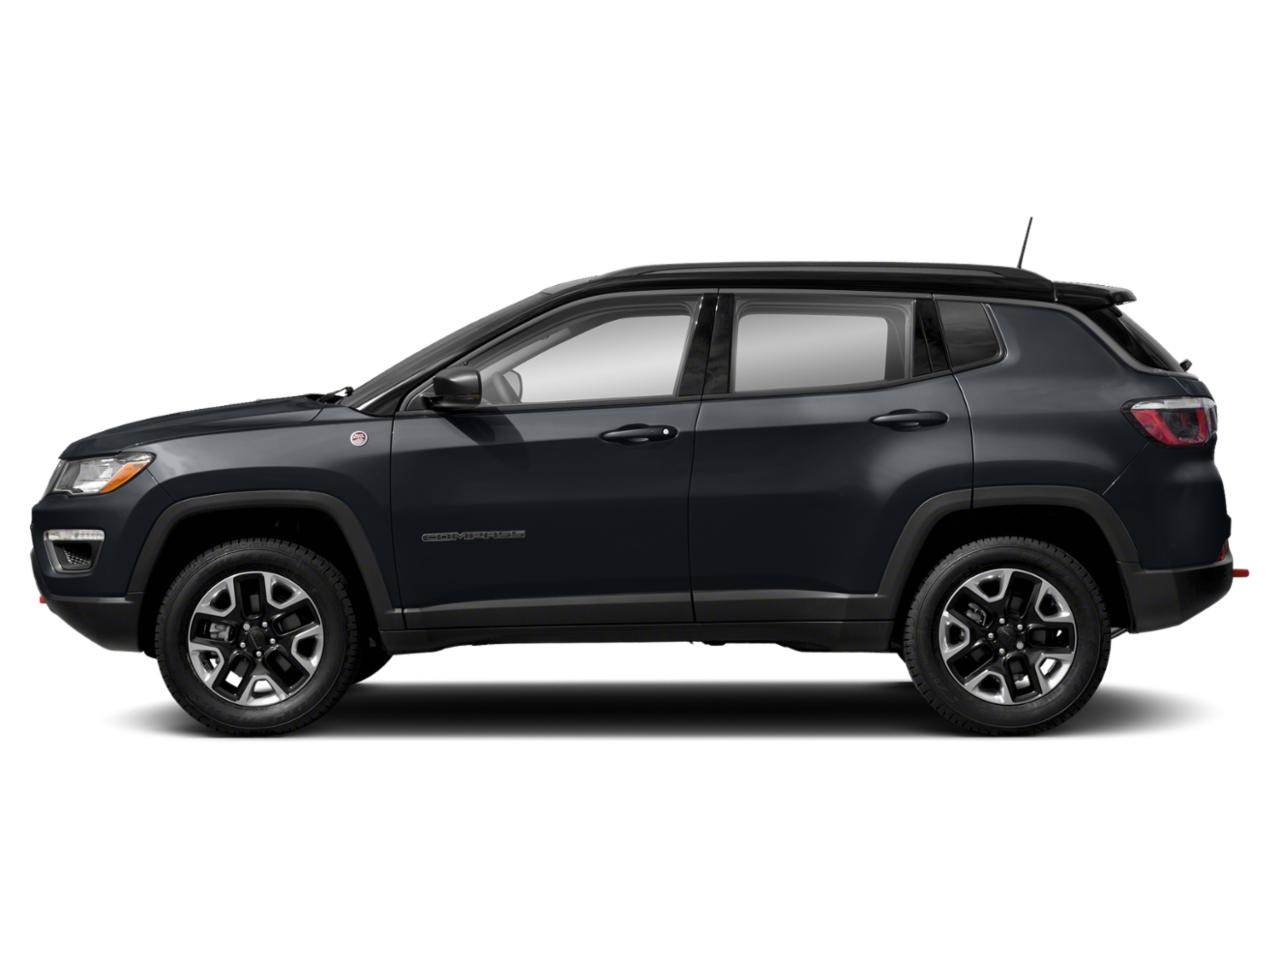 Used 2018 Jeep Compass Trailhawk with VIN 3C4NJDDB2JT316350 for sale in New Prague, Minnesota